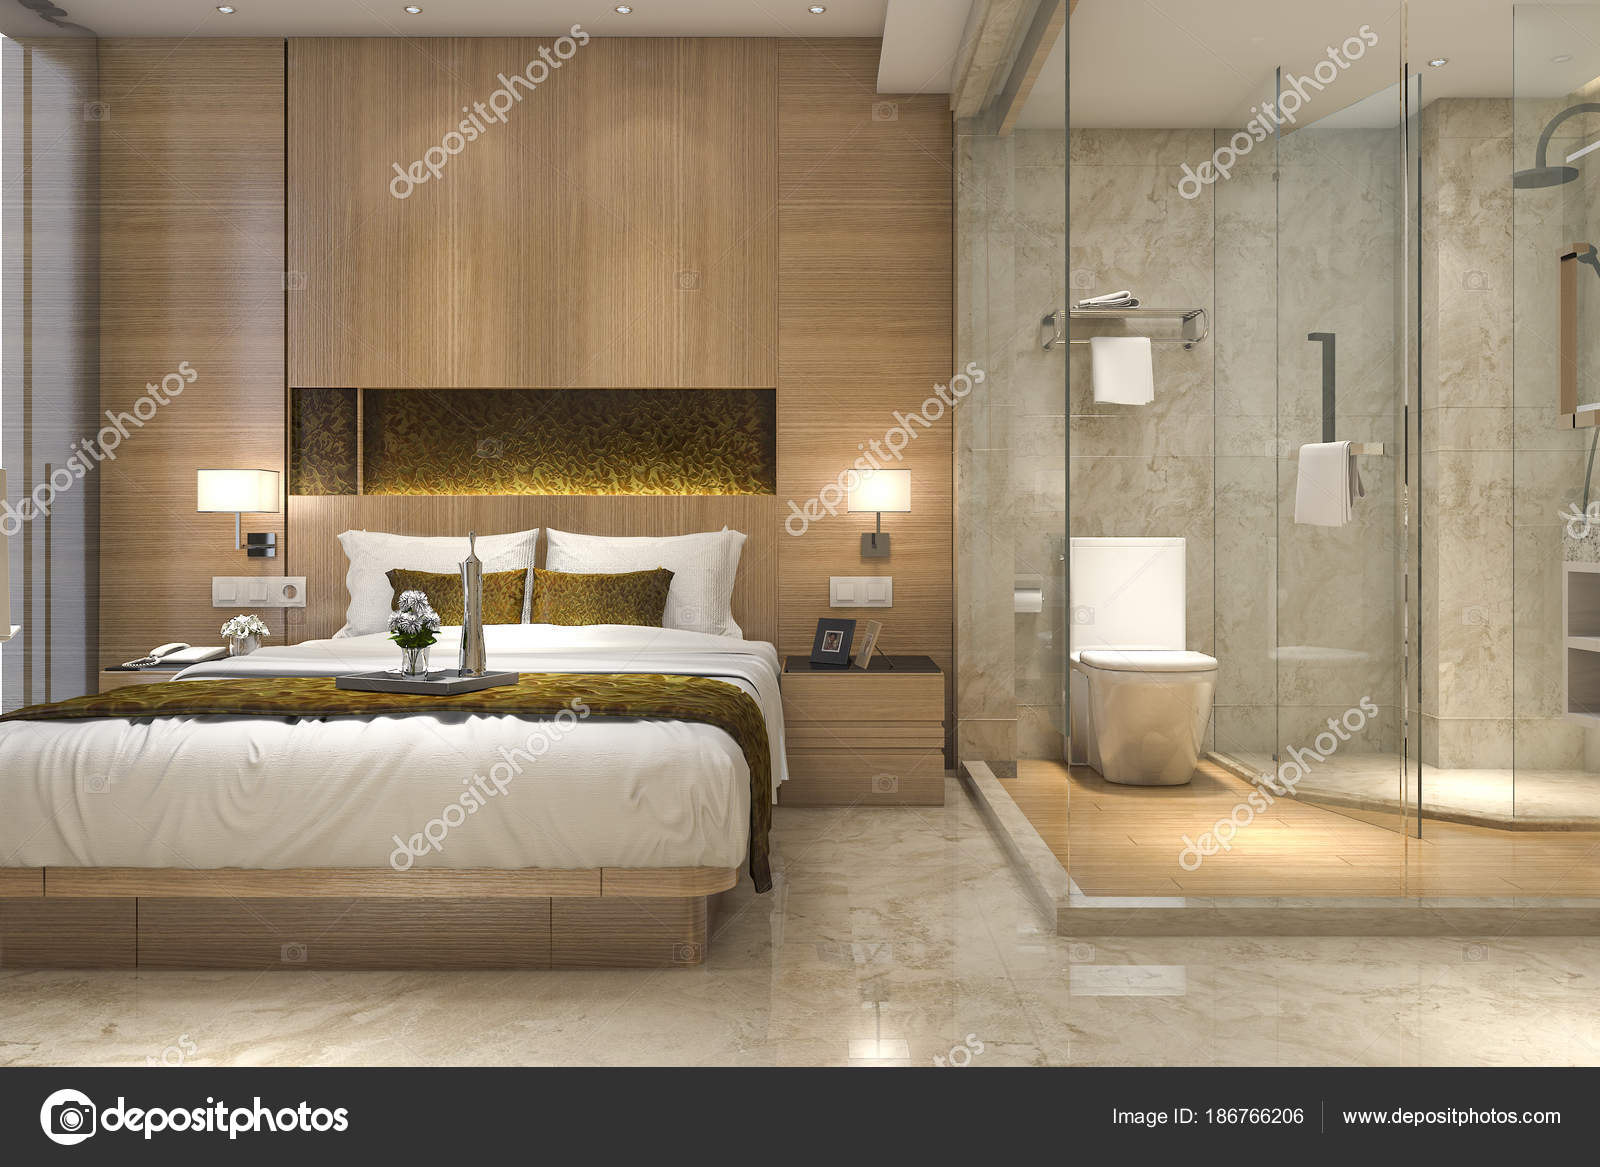 Salle De Bain De Luxe Photo Beautiful Salle De Bain De Luxe Moderne Photos Awesome